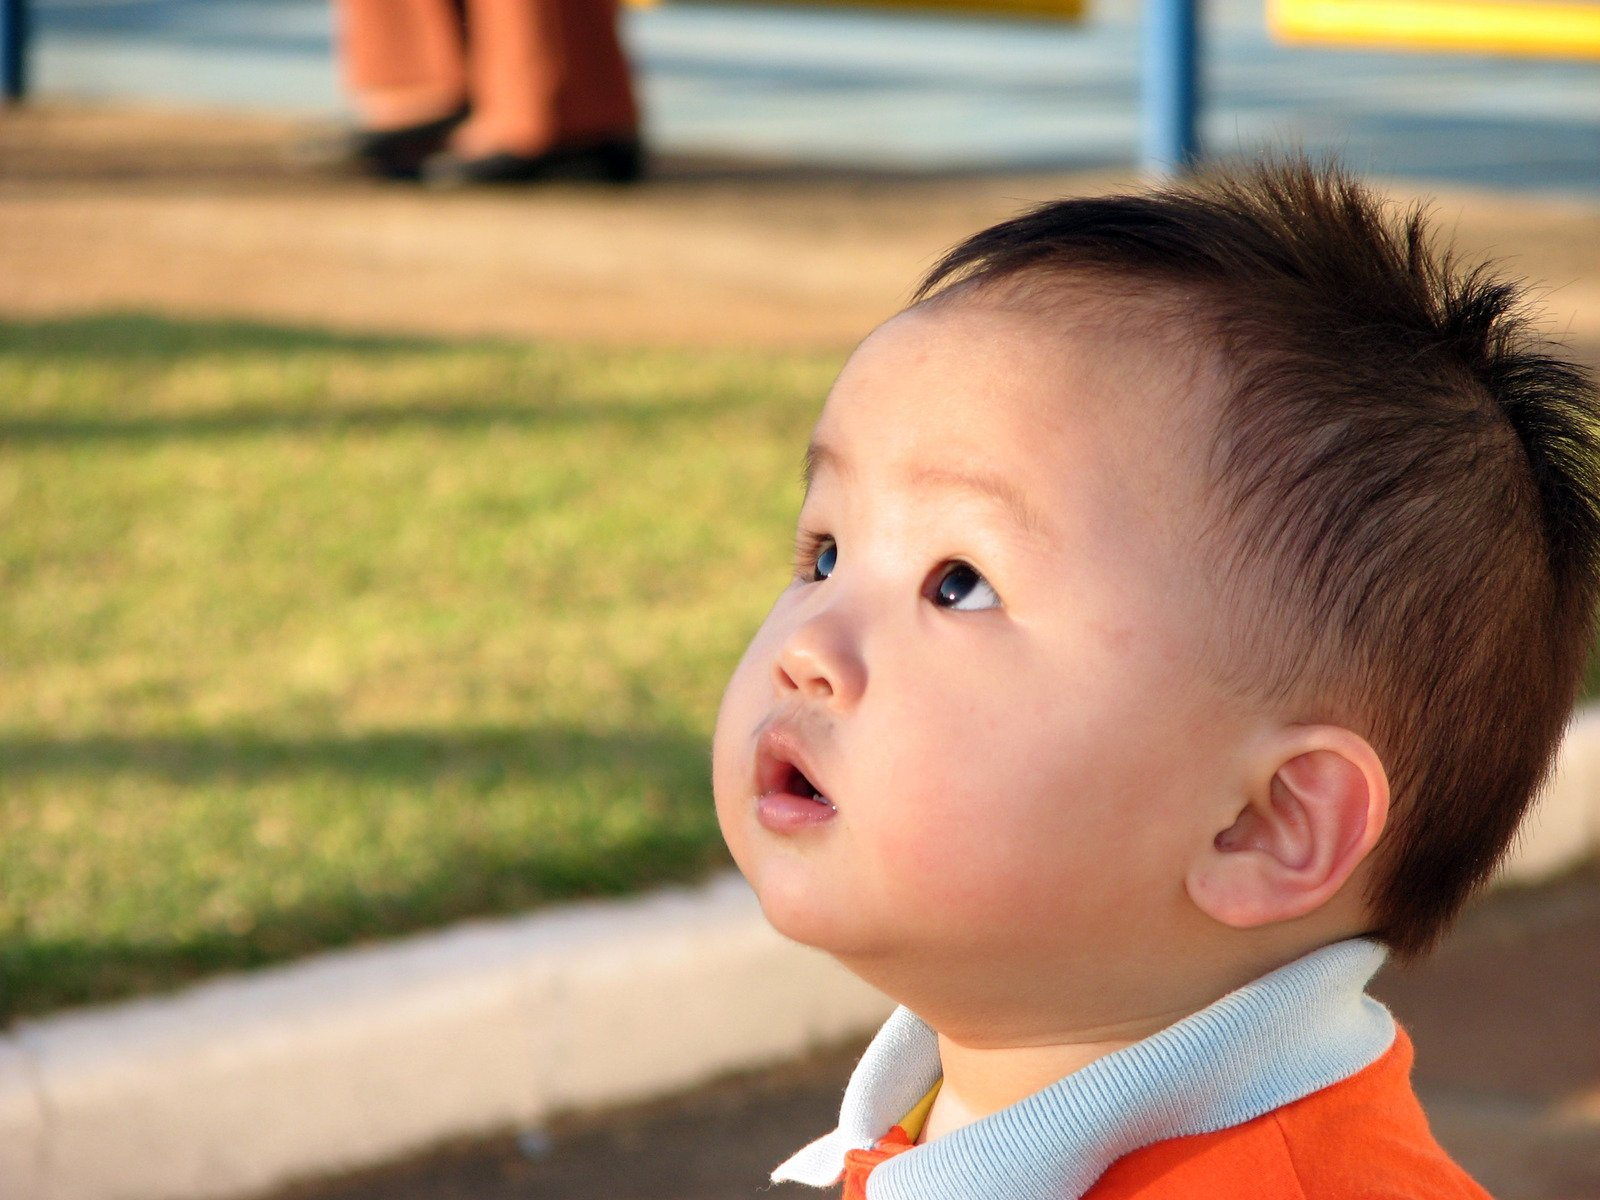 Free Little Asian Boy Surprised Stock Photo - FreeImages.com